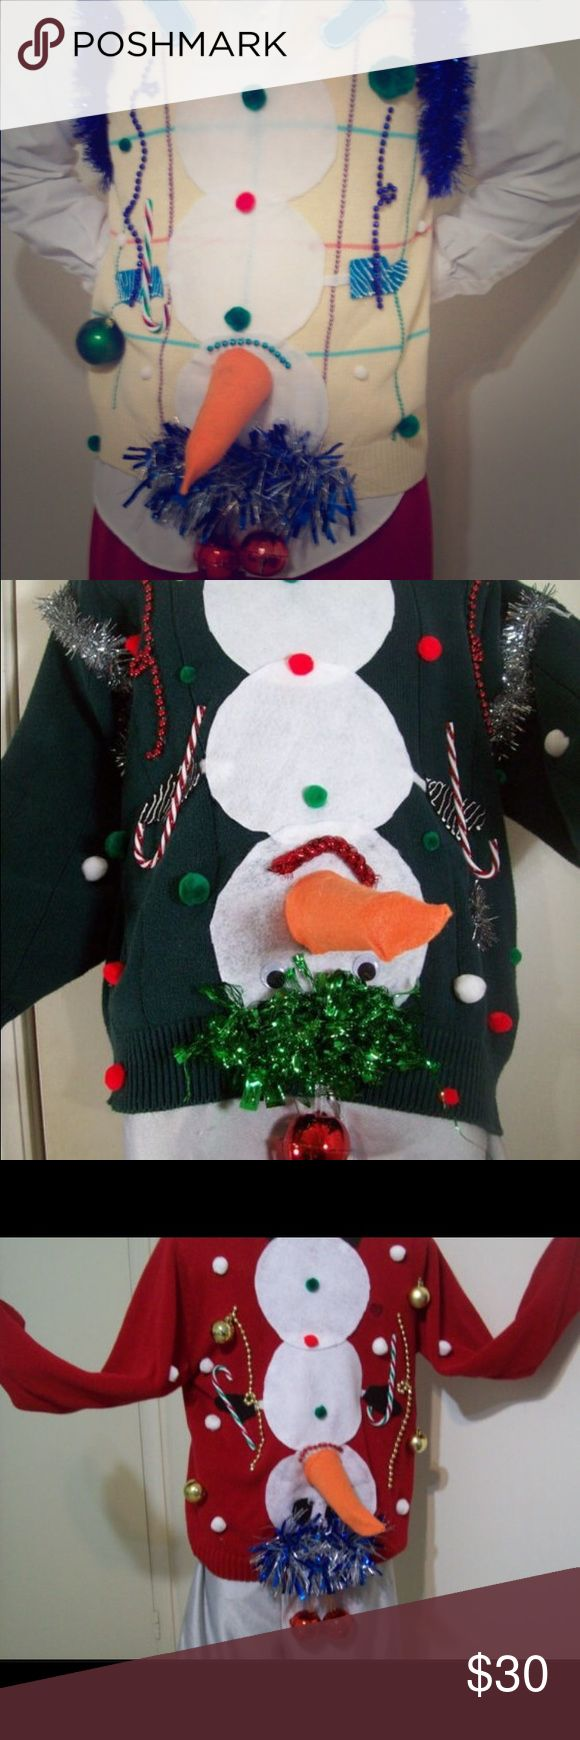 Ugly holiday sweater❤️ Handmade ugly Christmas sweater. Sure to be the best sweater at the holiday party! You choose the sweater color. MADE to order quick!!!! Sweaters